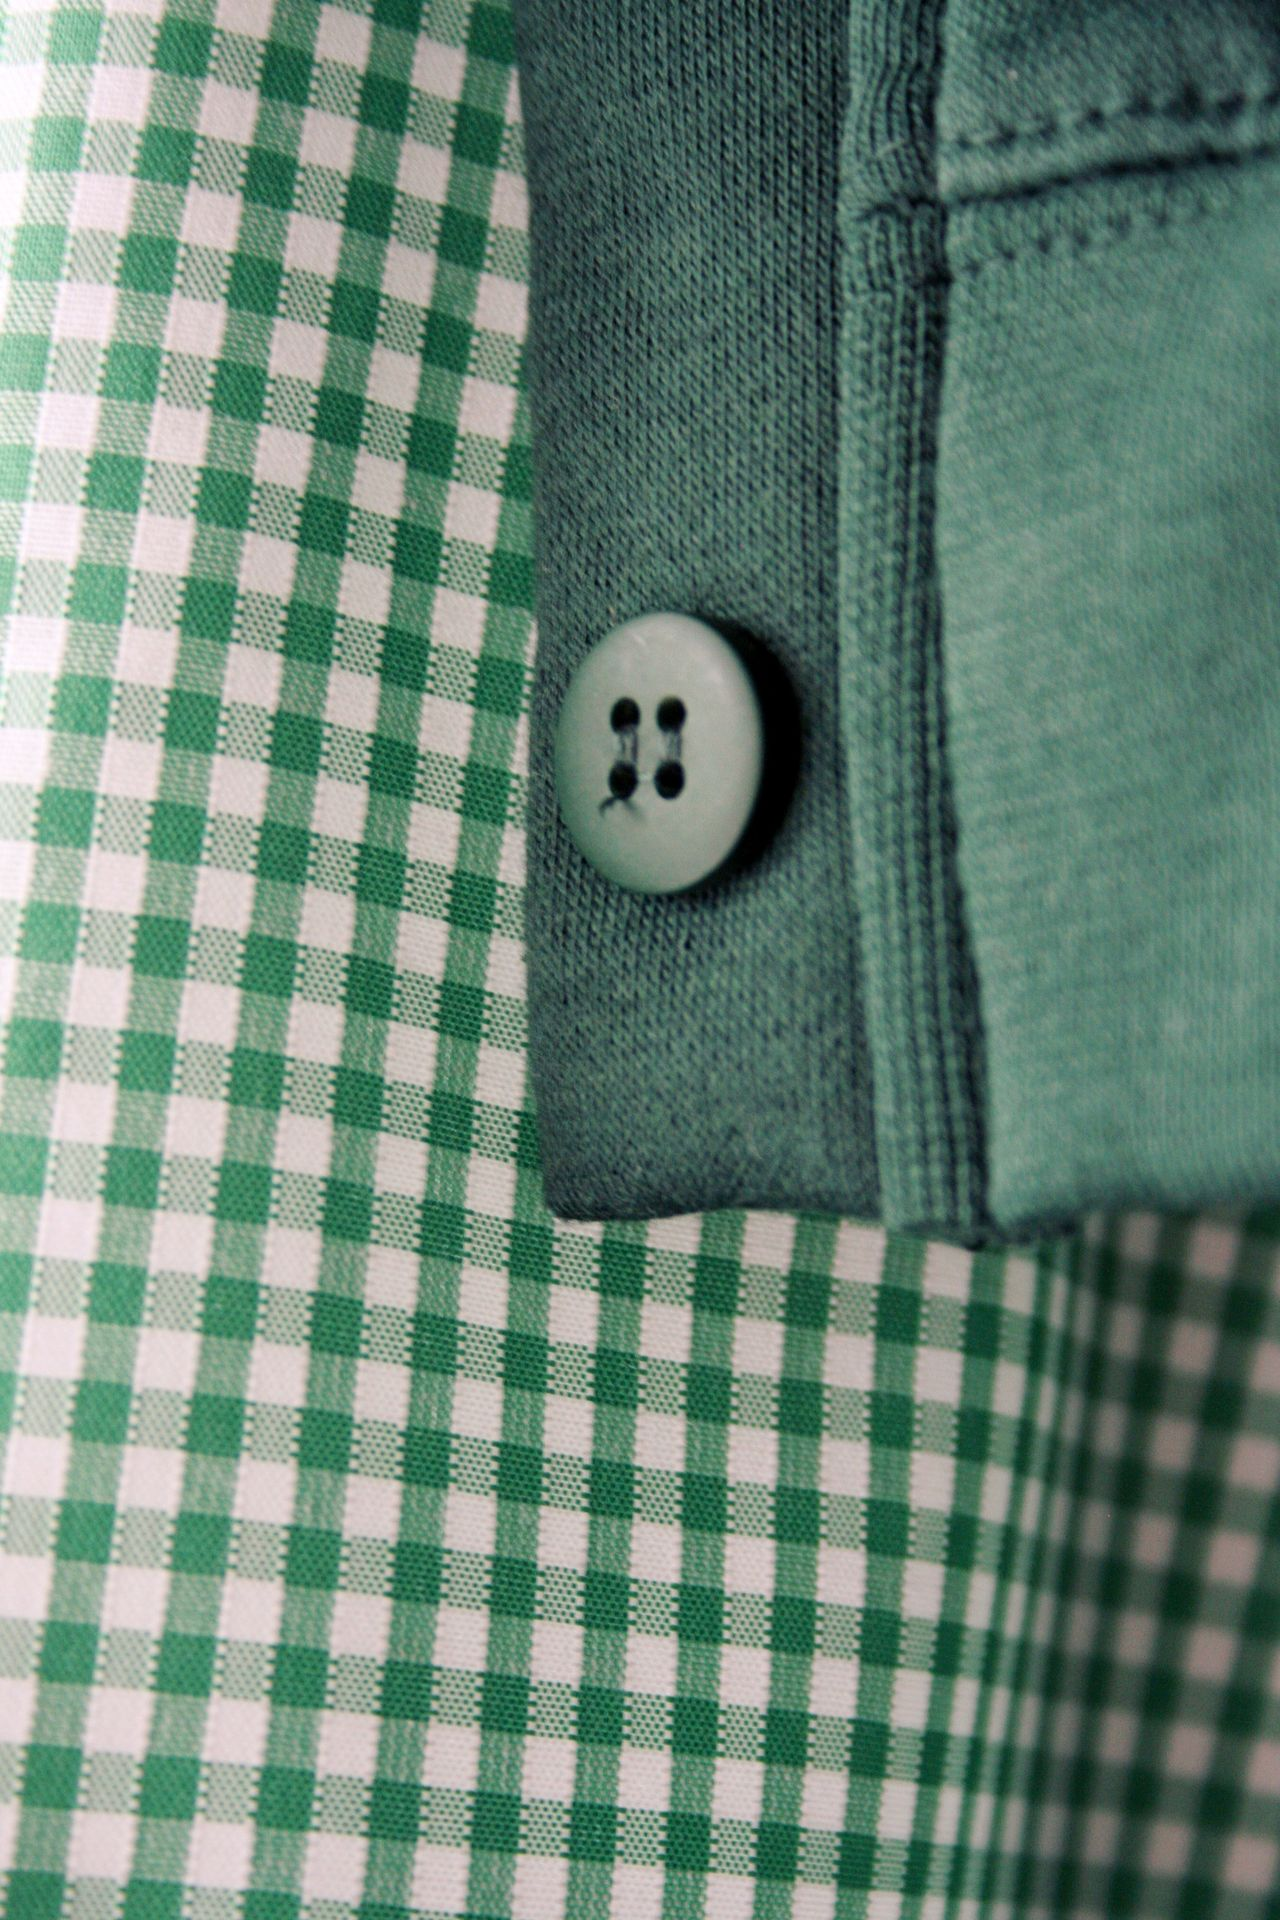 Backgrounds Button Close-up Clothing Extreme Close Up Fabric Full Frame Gingham Green Color No People Part Of School School Uniform School Uniforms  Textile The Color Of School